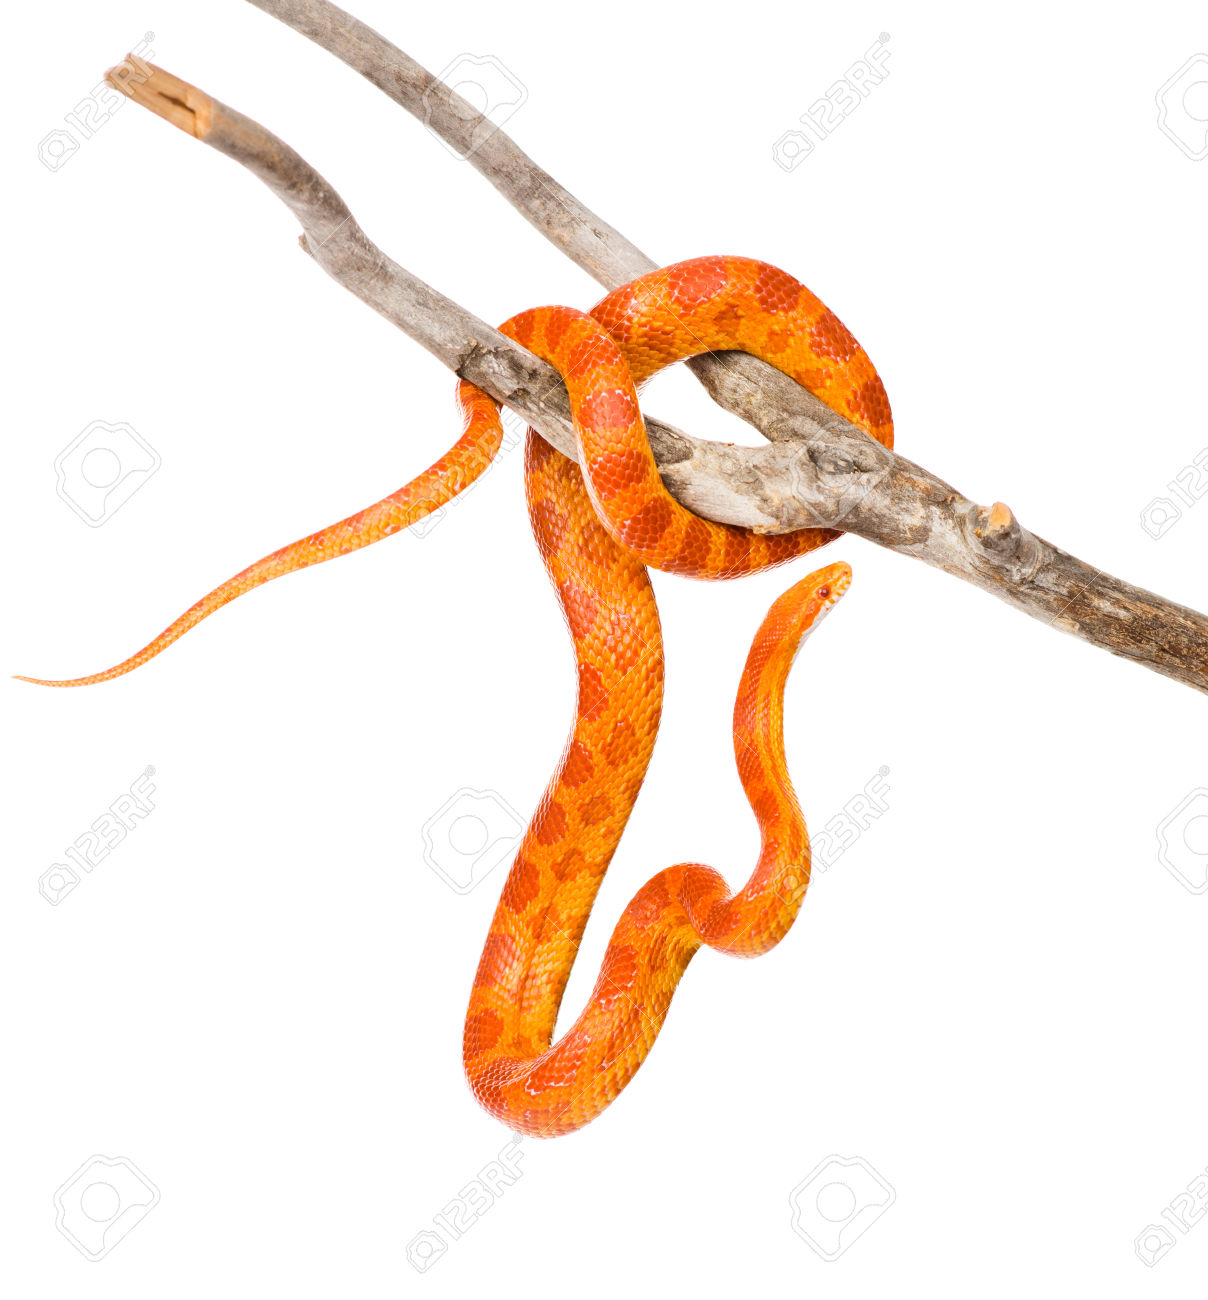 Creamsicle Corn Snake Elaphe Guttata Guttata On A Dry Branch.